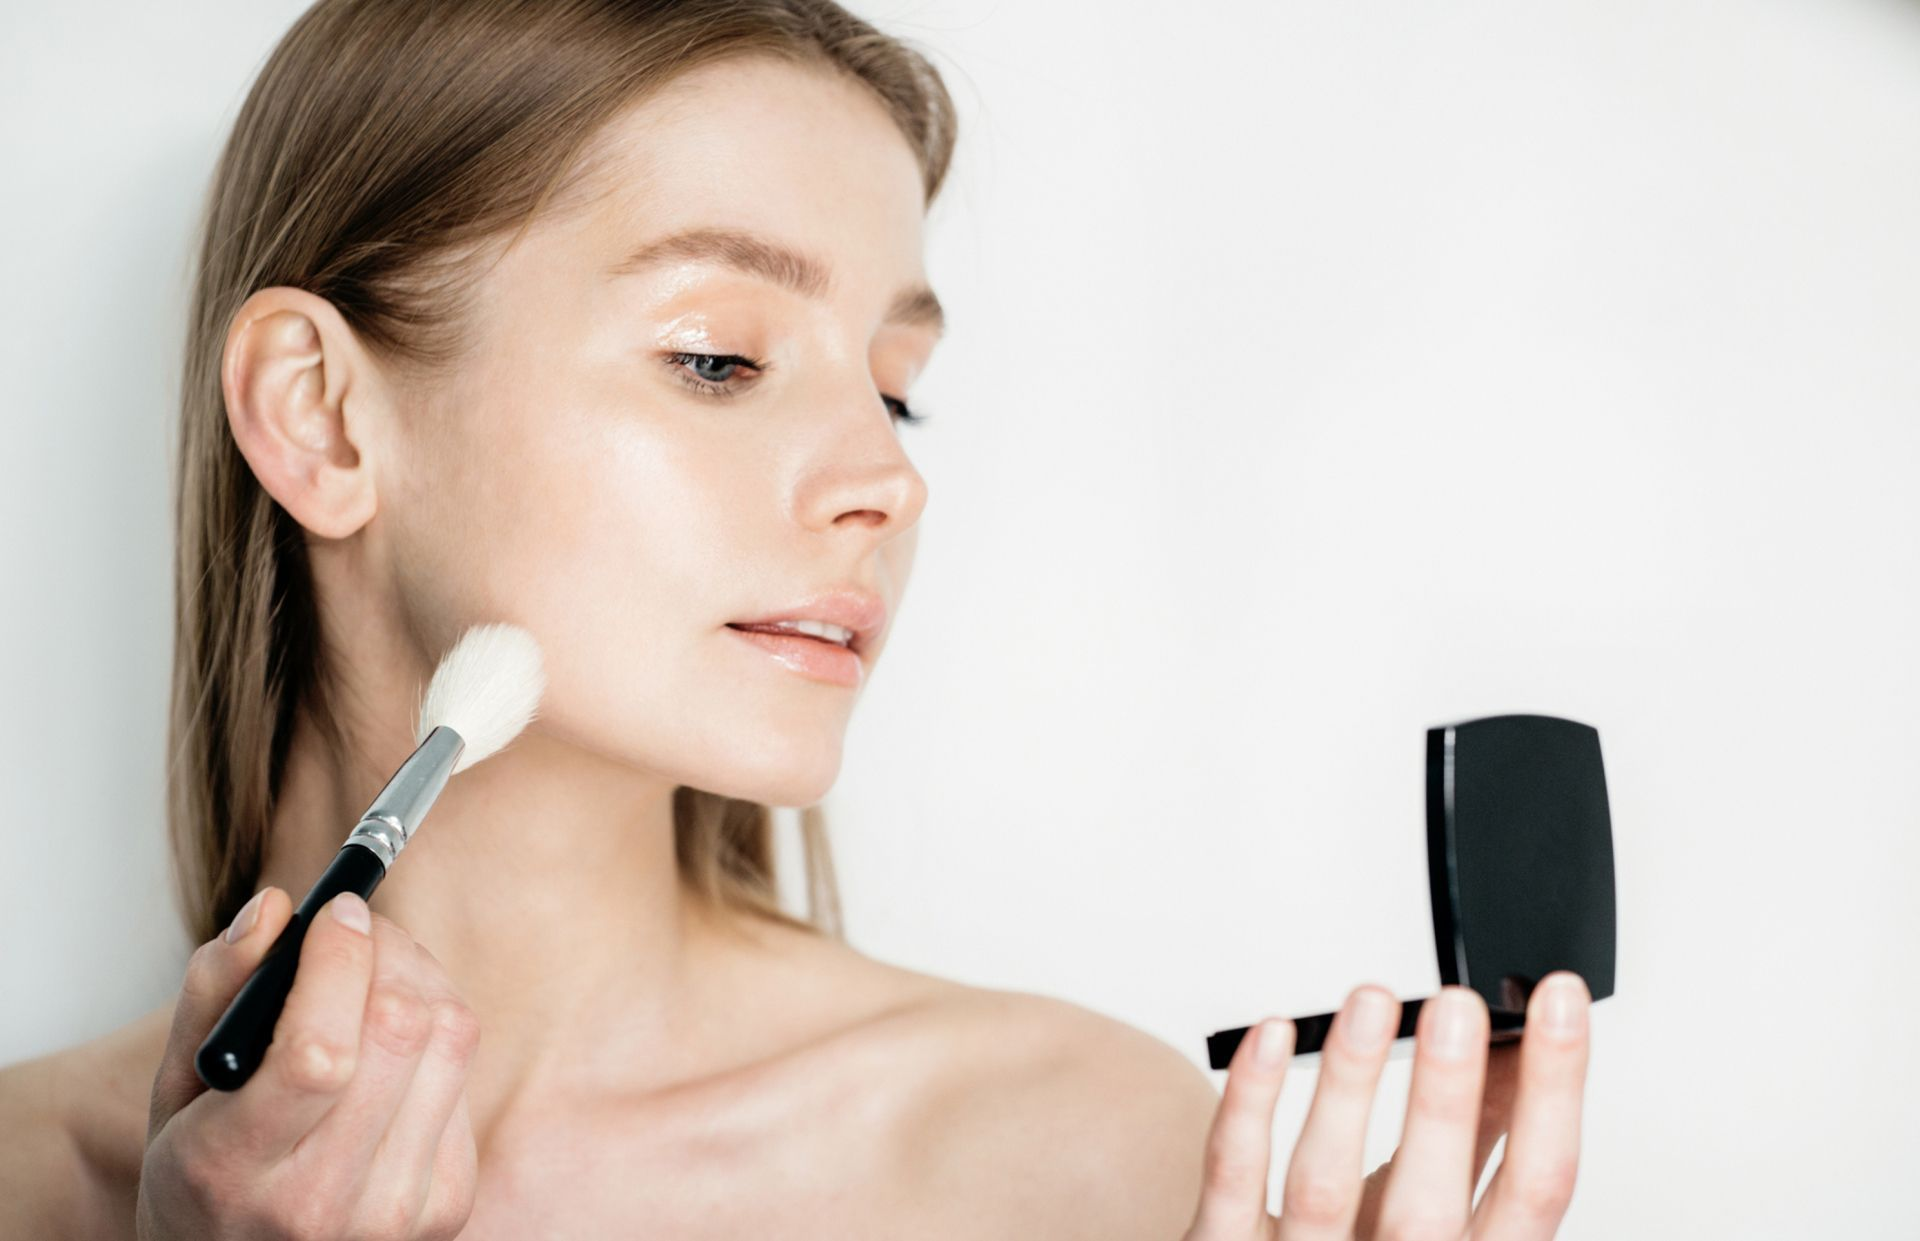 Skinimalism Is Going To Be The Biggest Beauty Trend In 2021